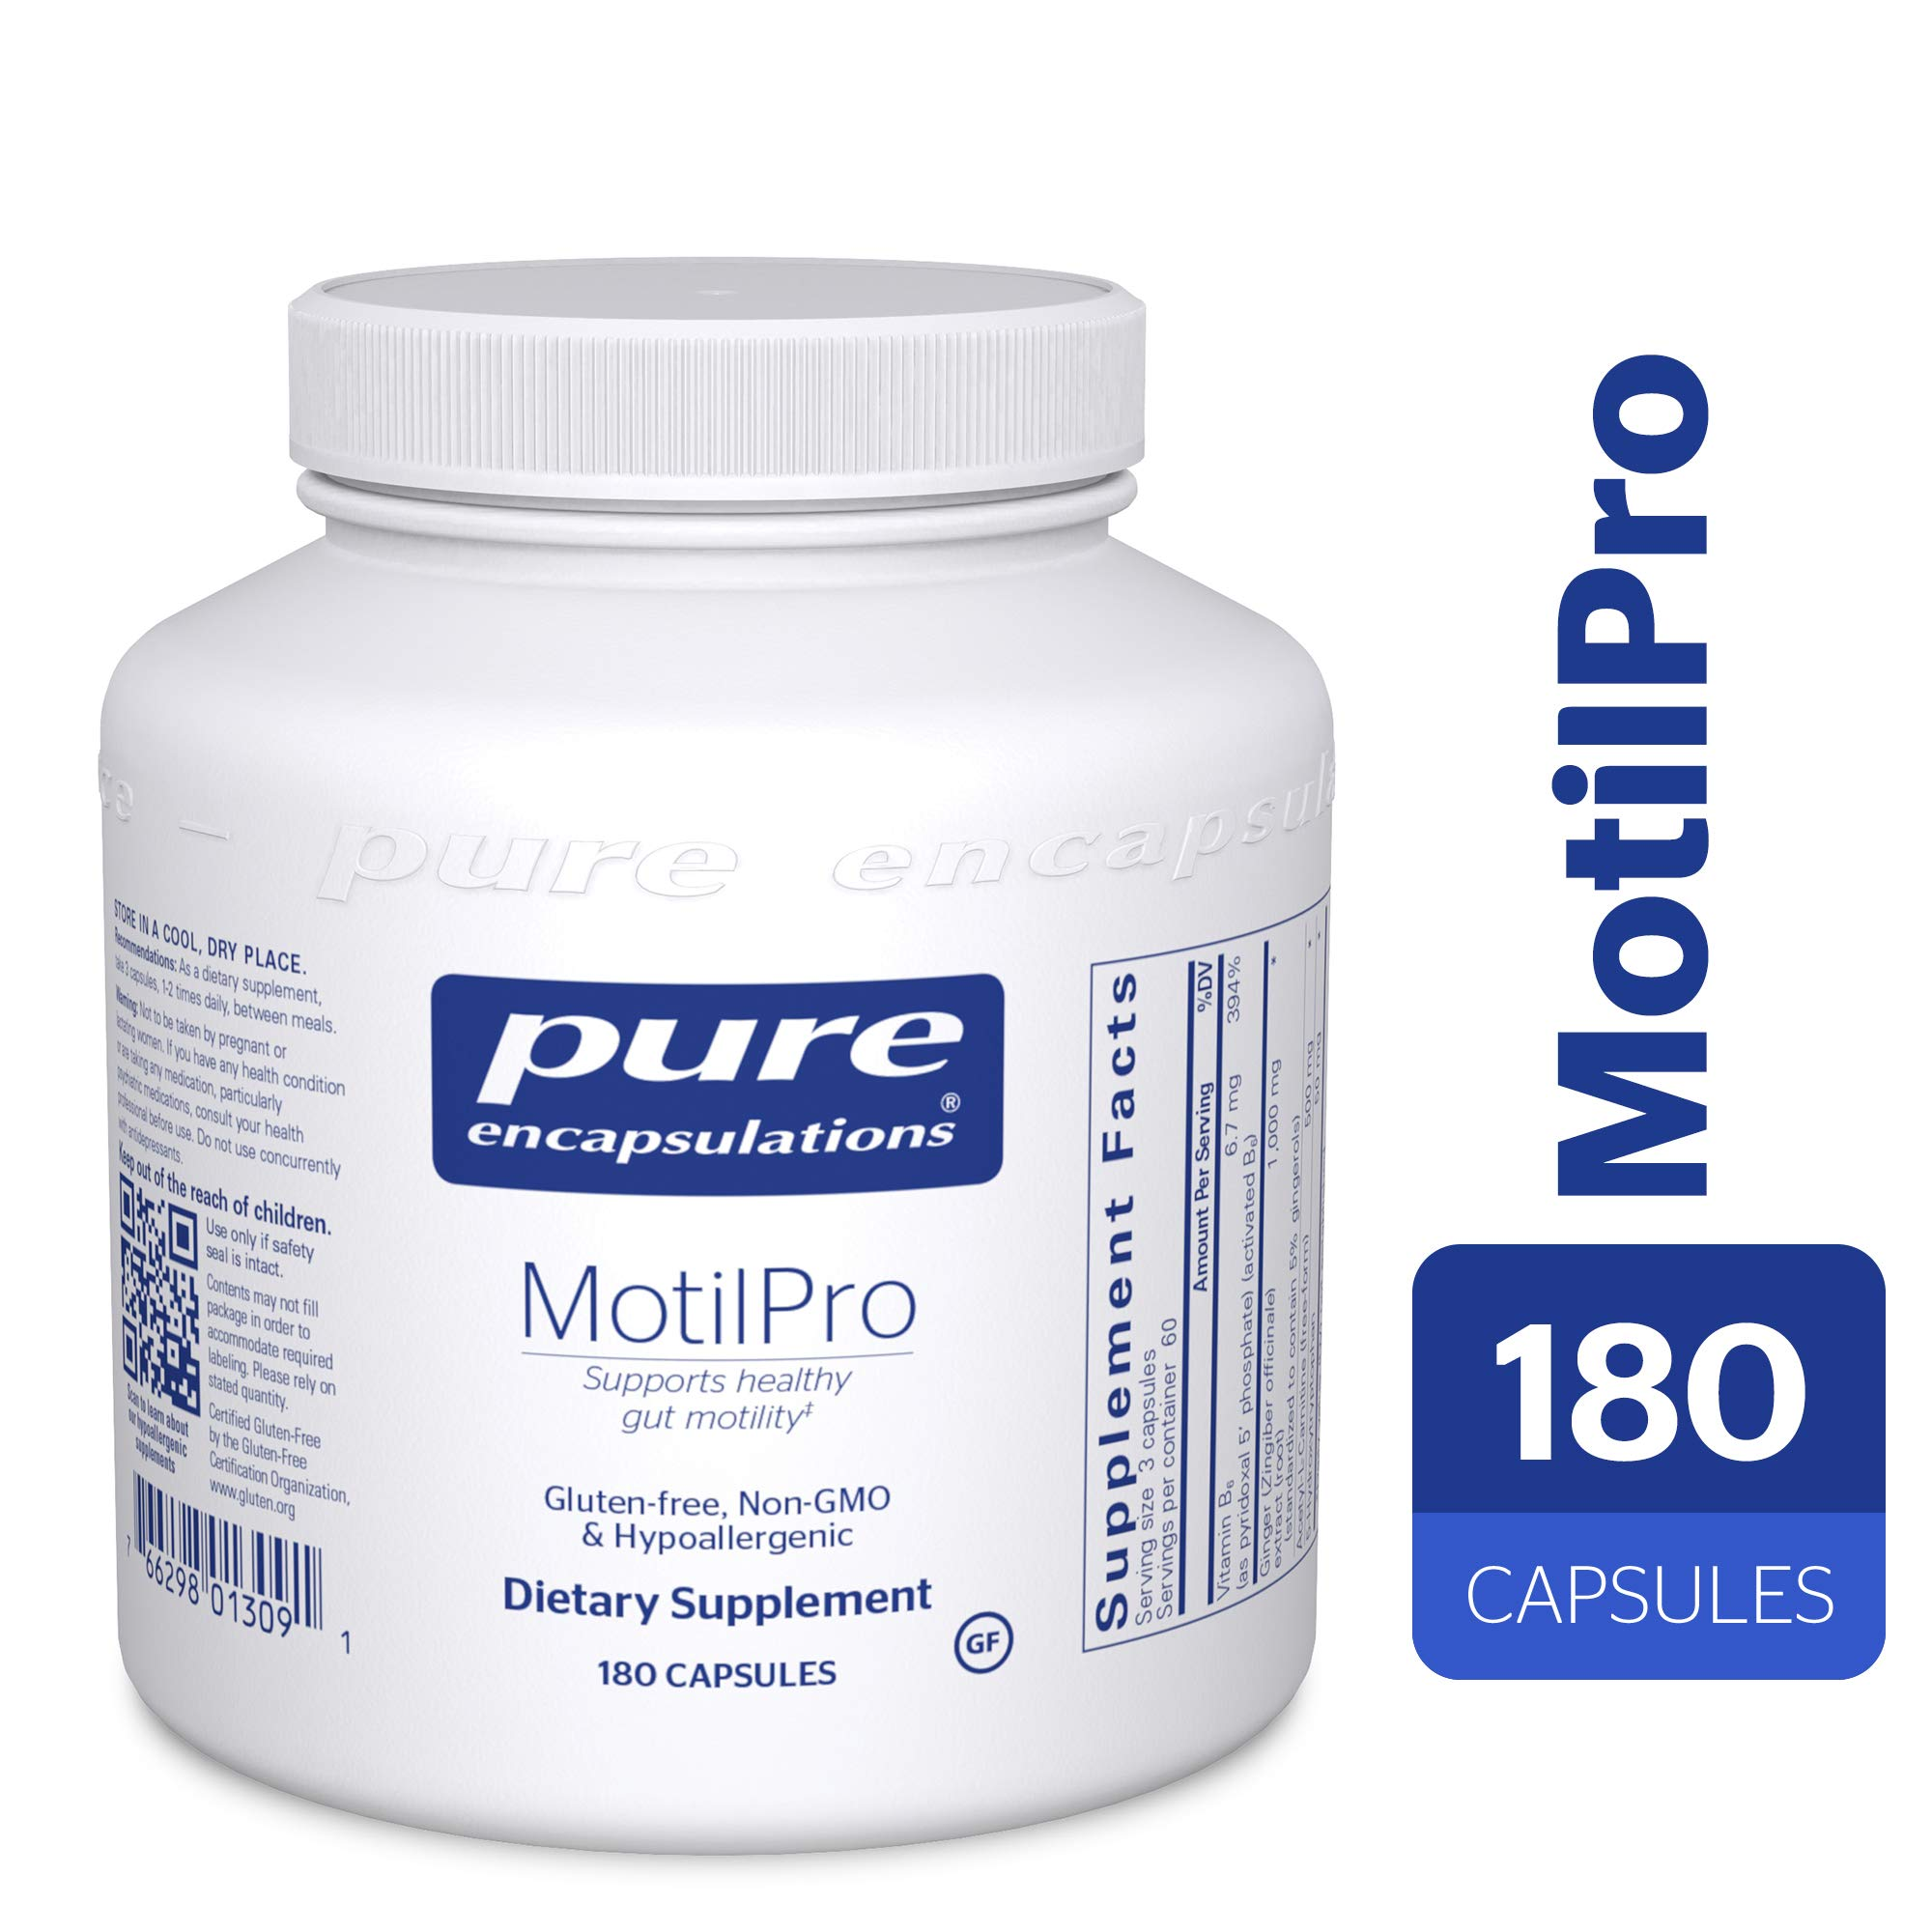 Pure Encapsulations - MotilPro - Hypoallergenic Dietary Supplement to Promote Healthy Gut Motility* - 180 Capsules by Pure Encapsulations